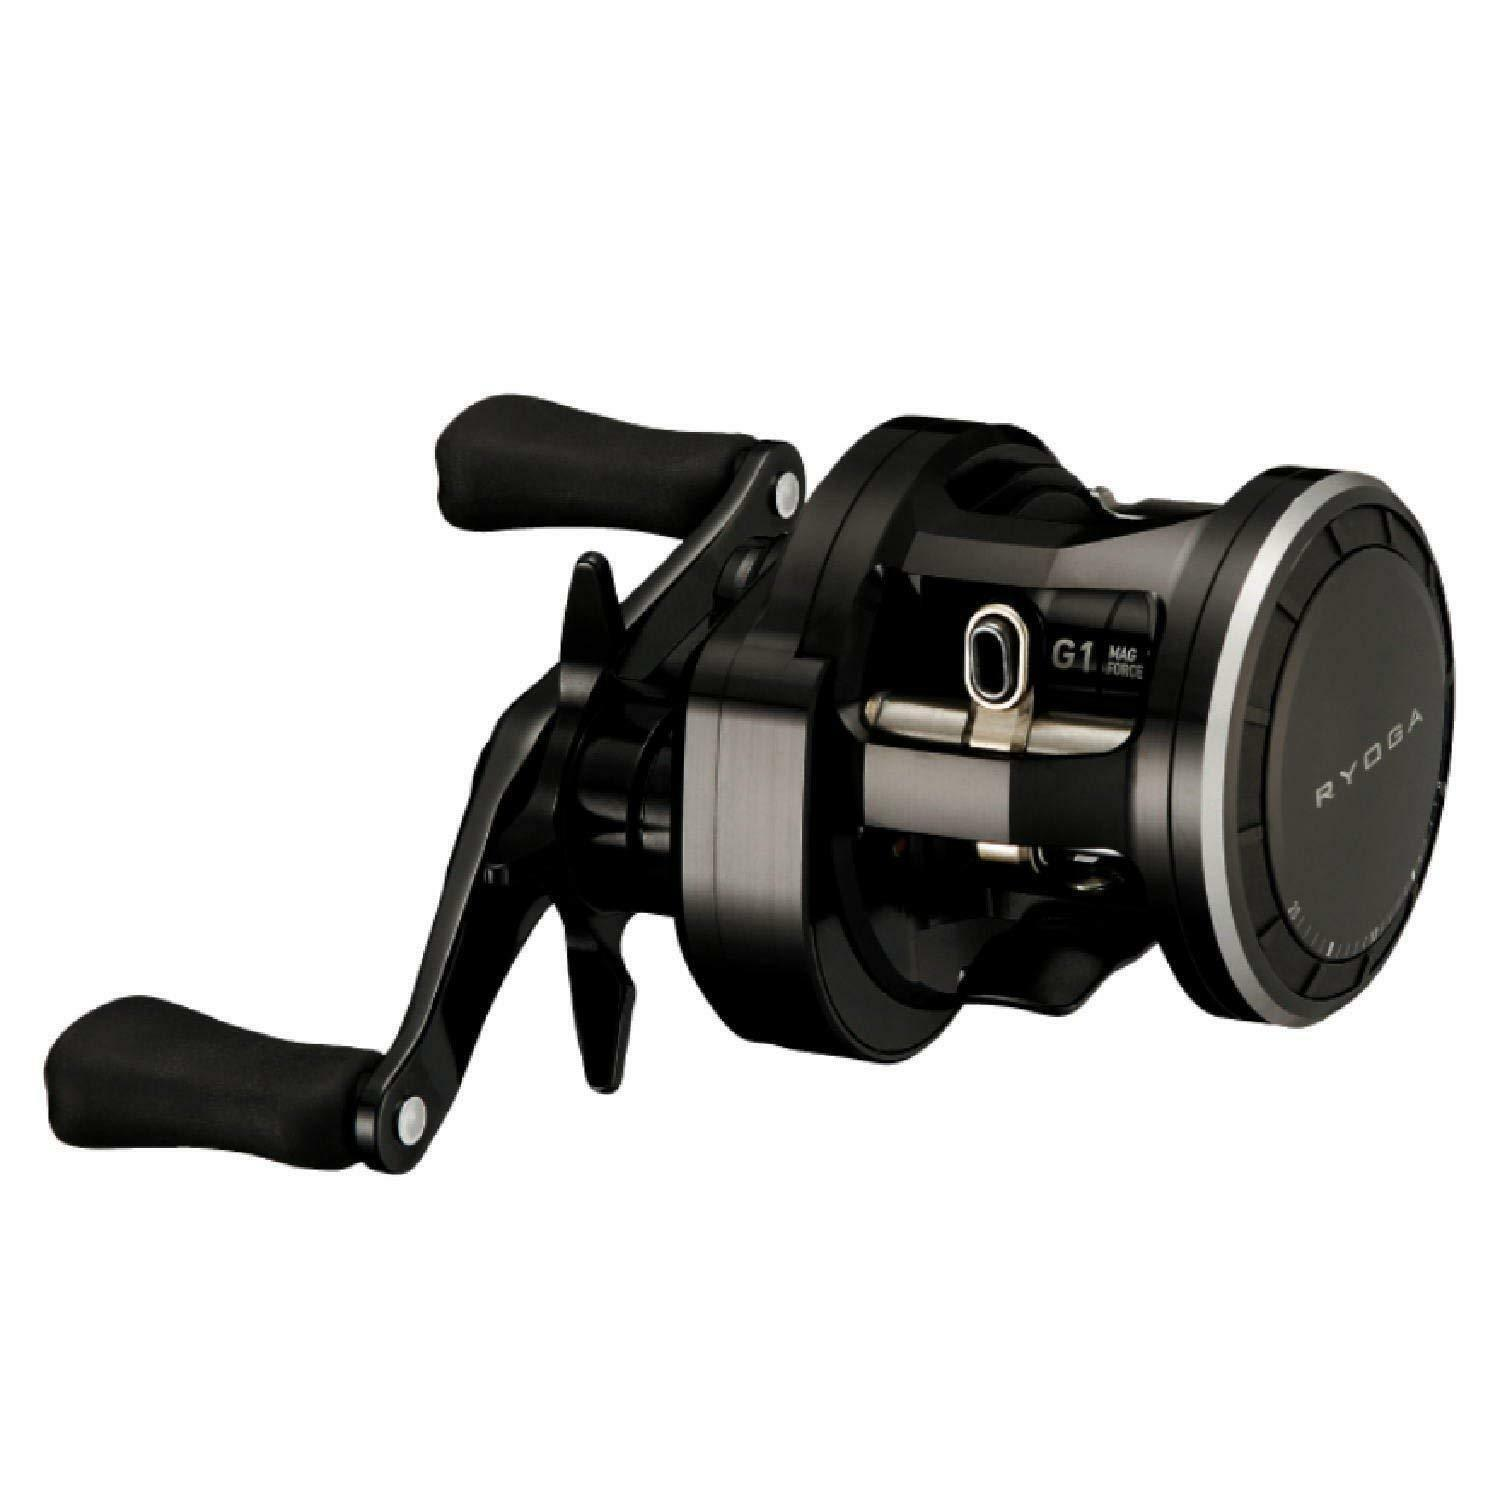 Daiwa 18 RYOGA 1016CC Right Handed Baitcasting Reel New in Box